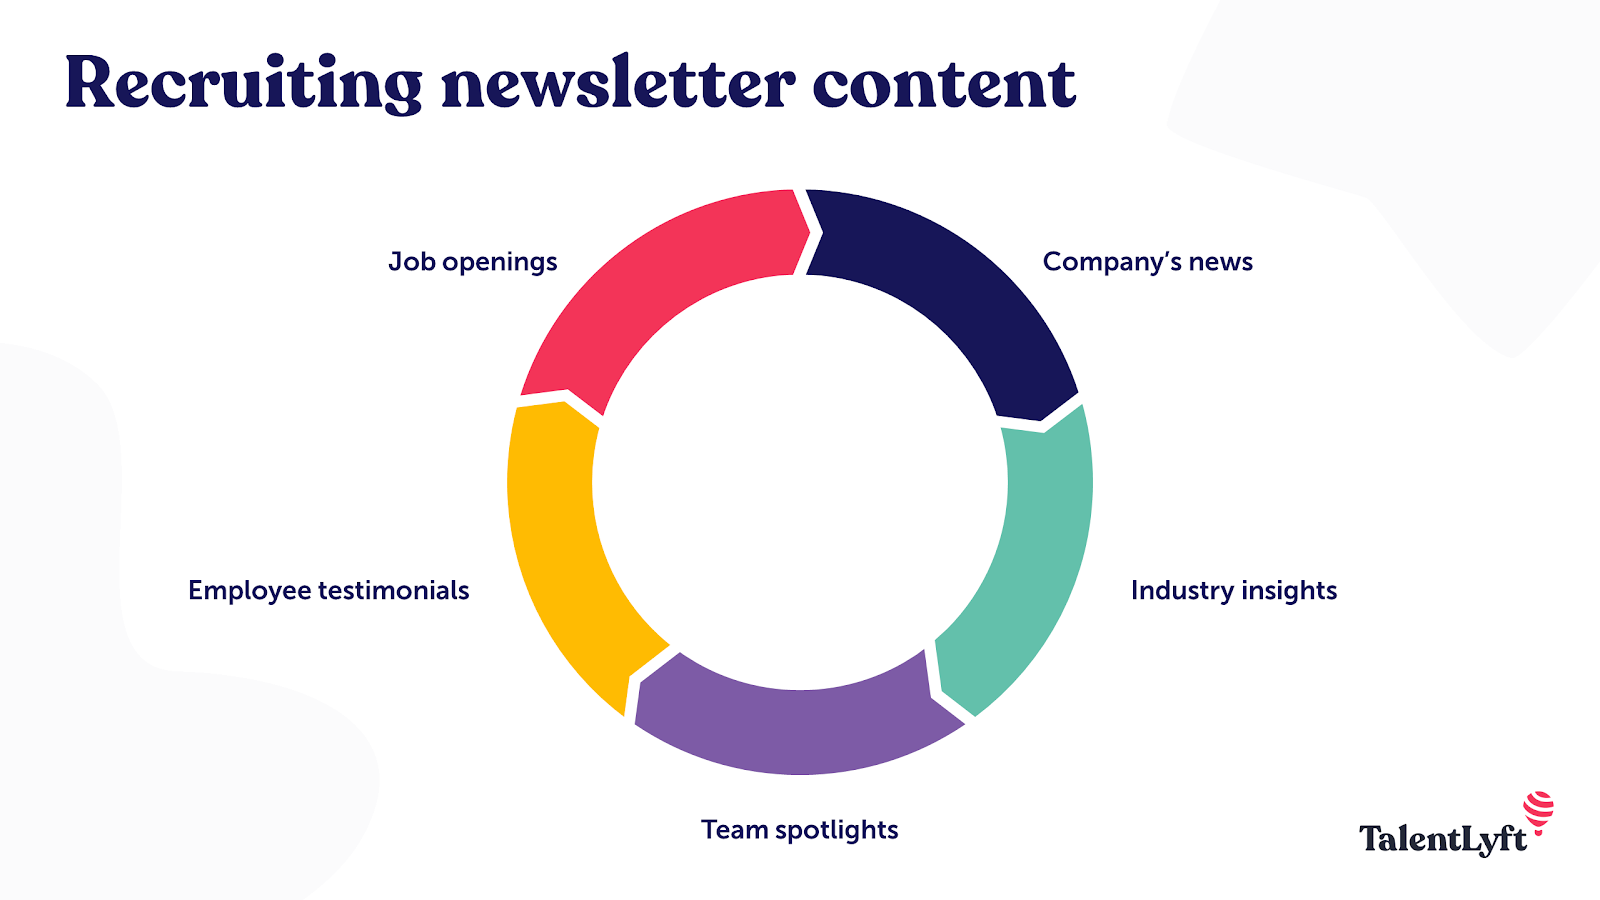 Recruiting newsletter content